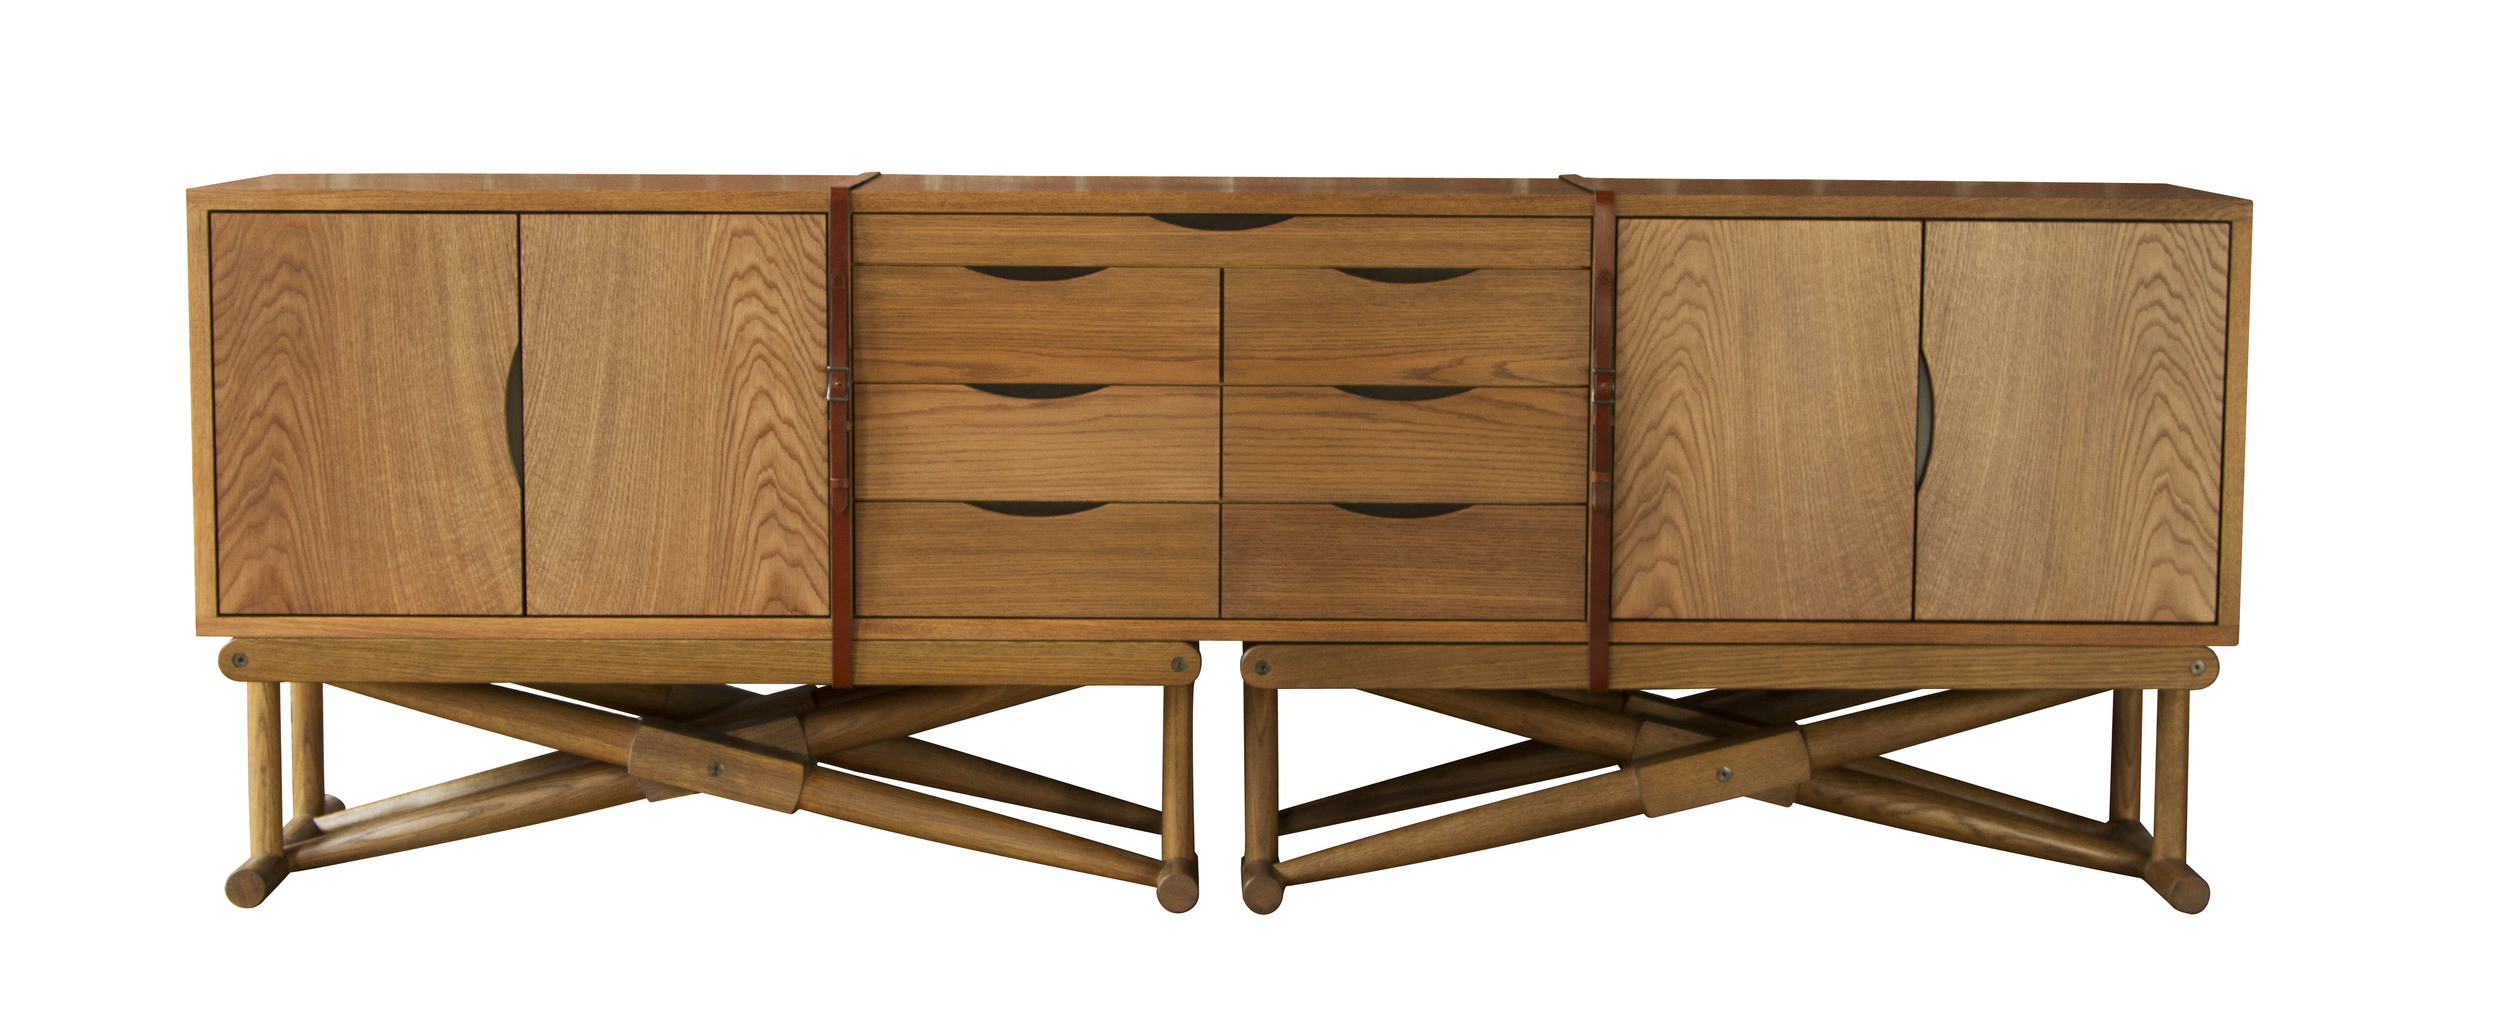 Ingram Console in white oak - fumed and oiled